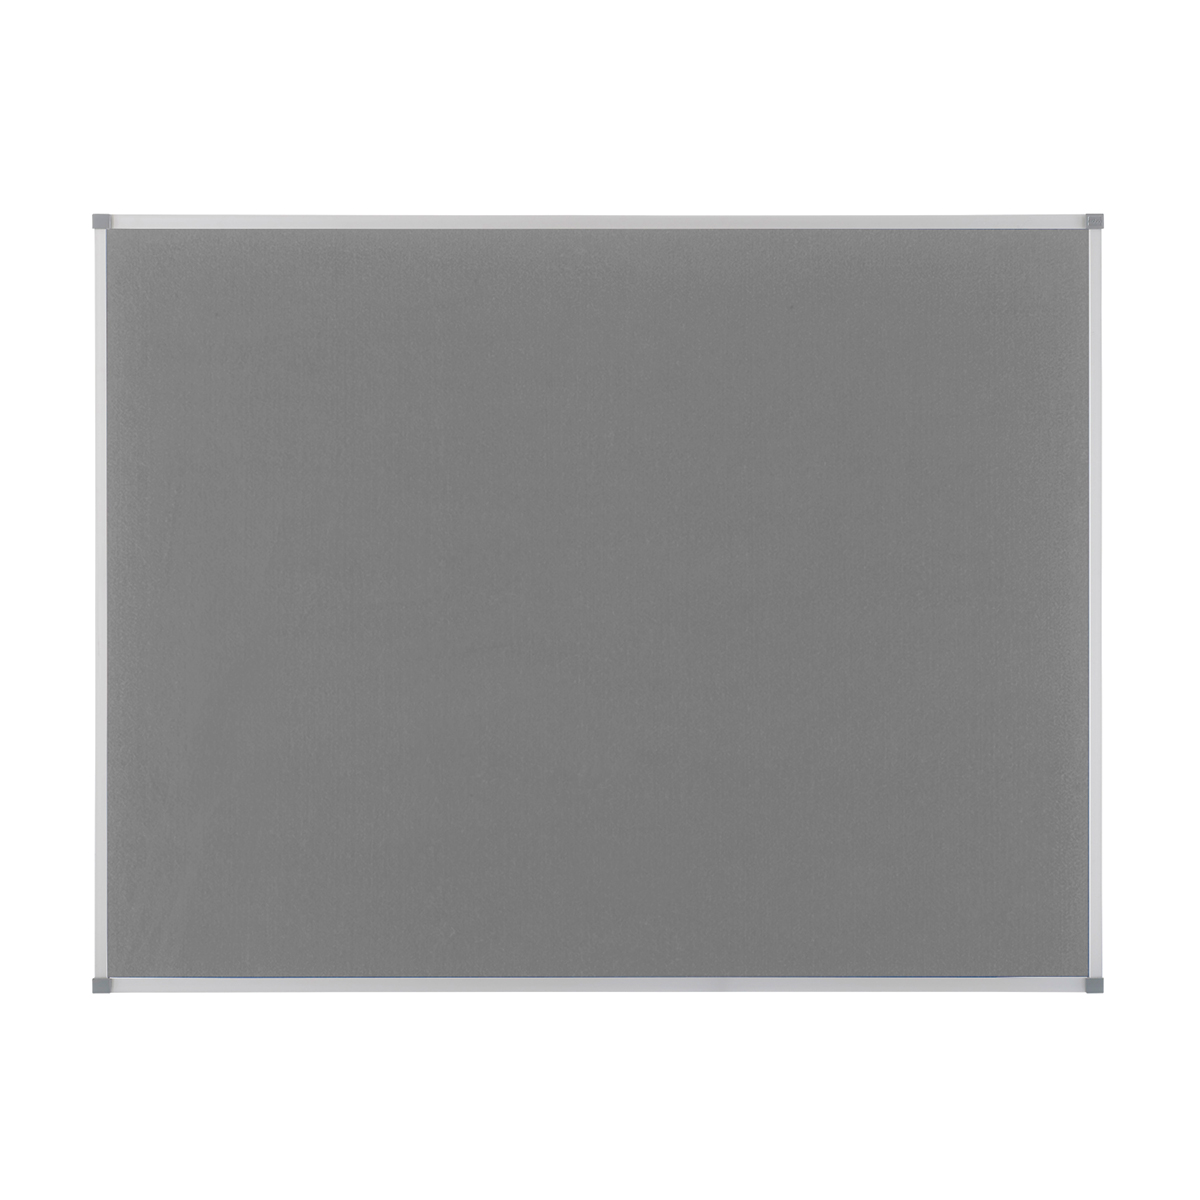 Nobo 1900912 Classic Grey Felt Noticeboard 1200 x 900mm